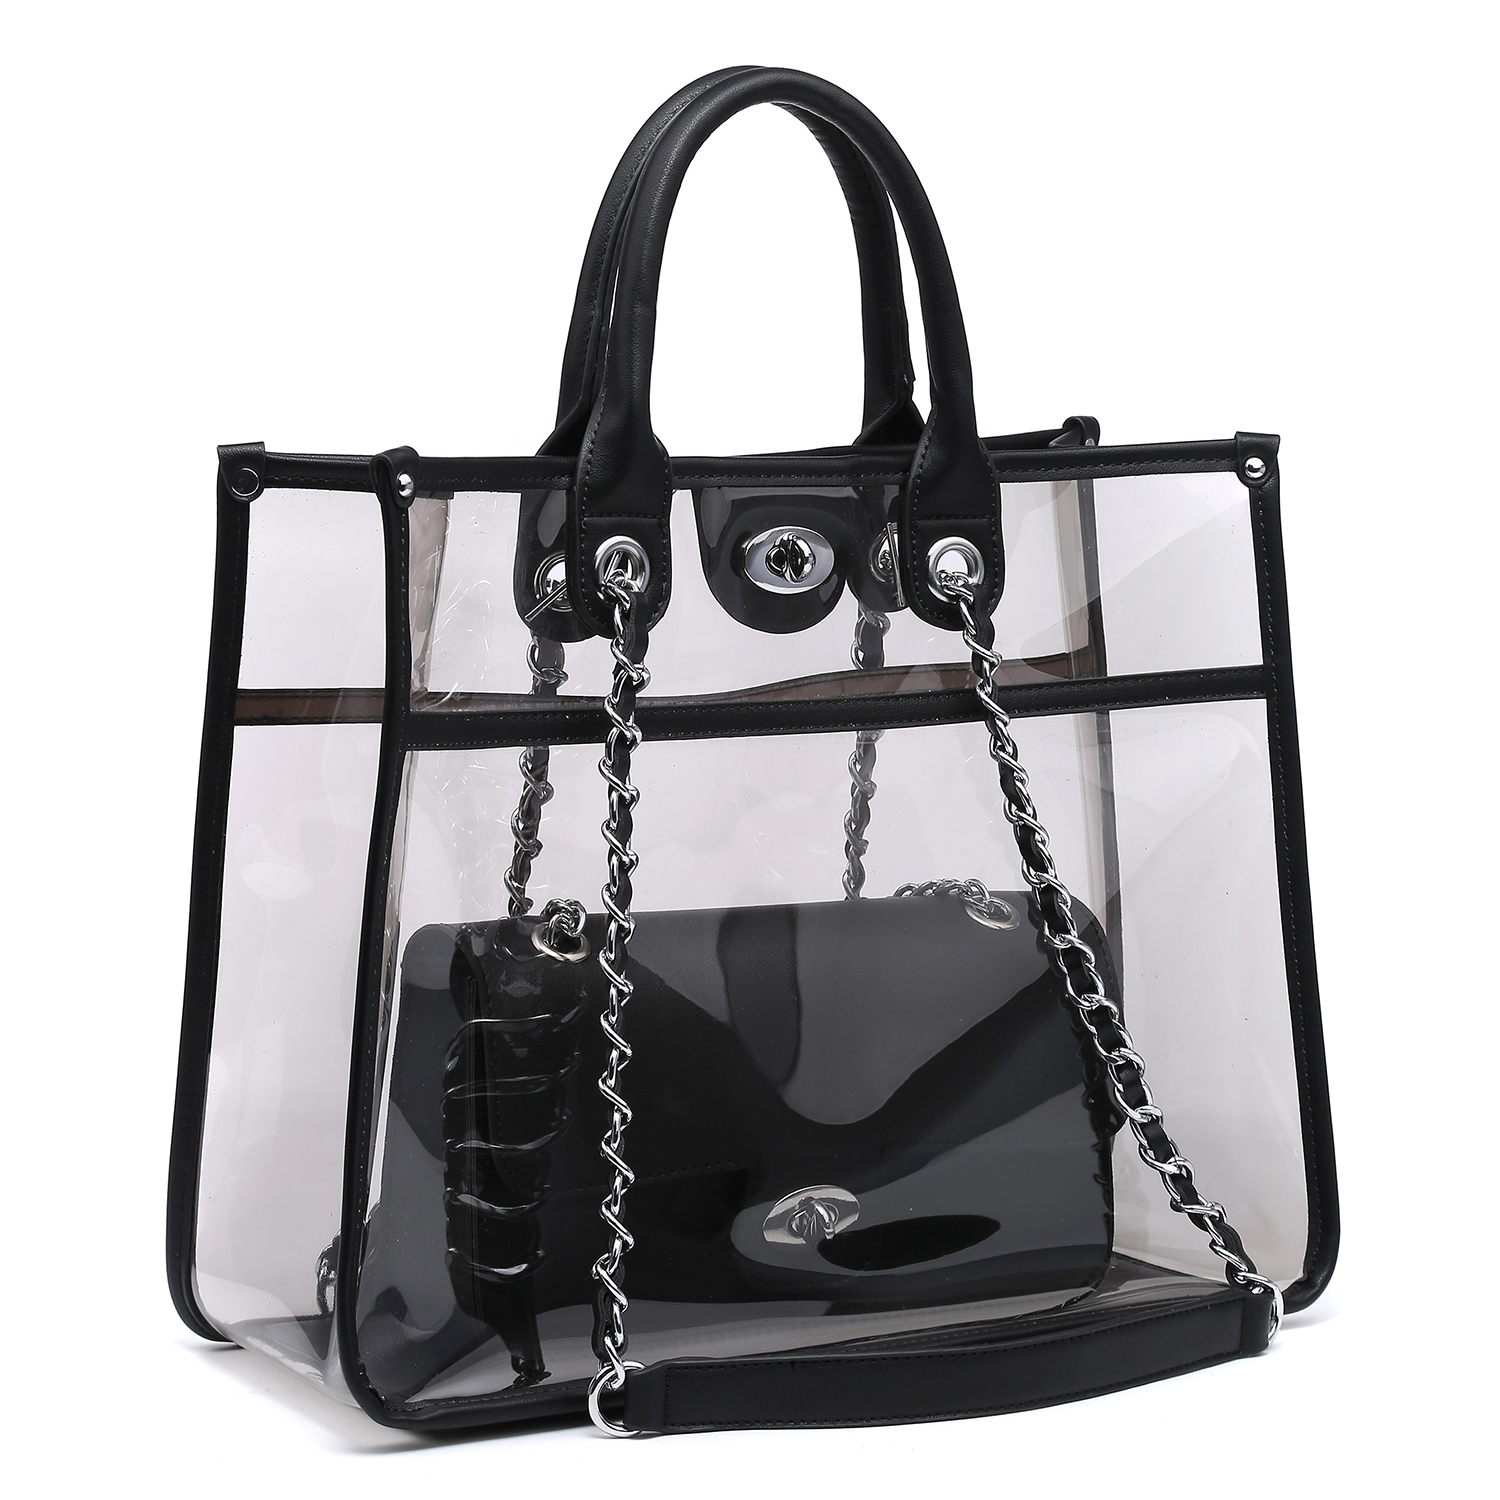 Dasein 2-in-1 Classic Clear Transparent Tote